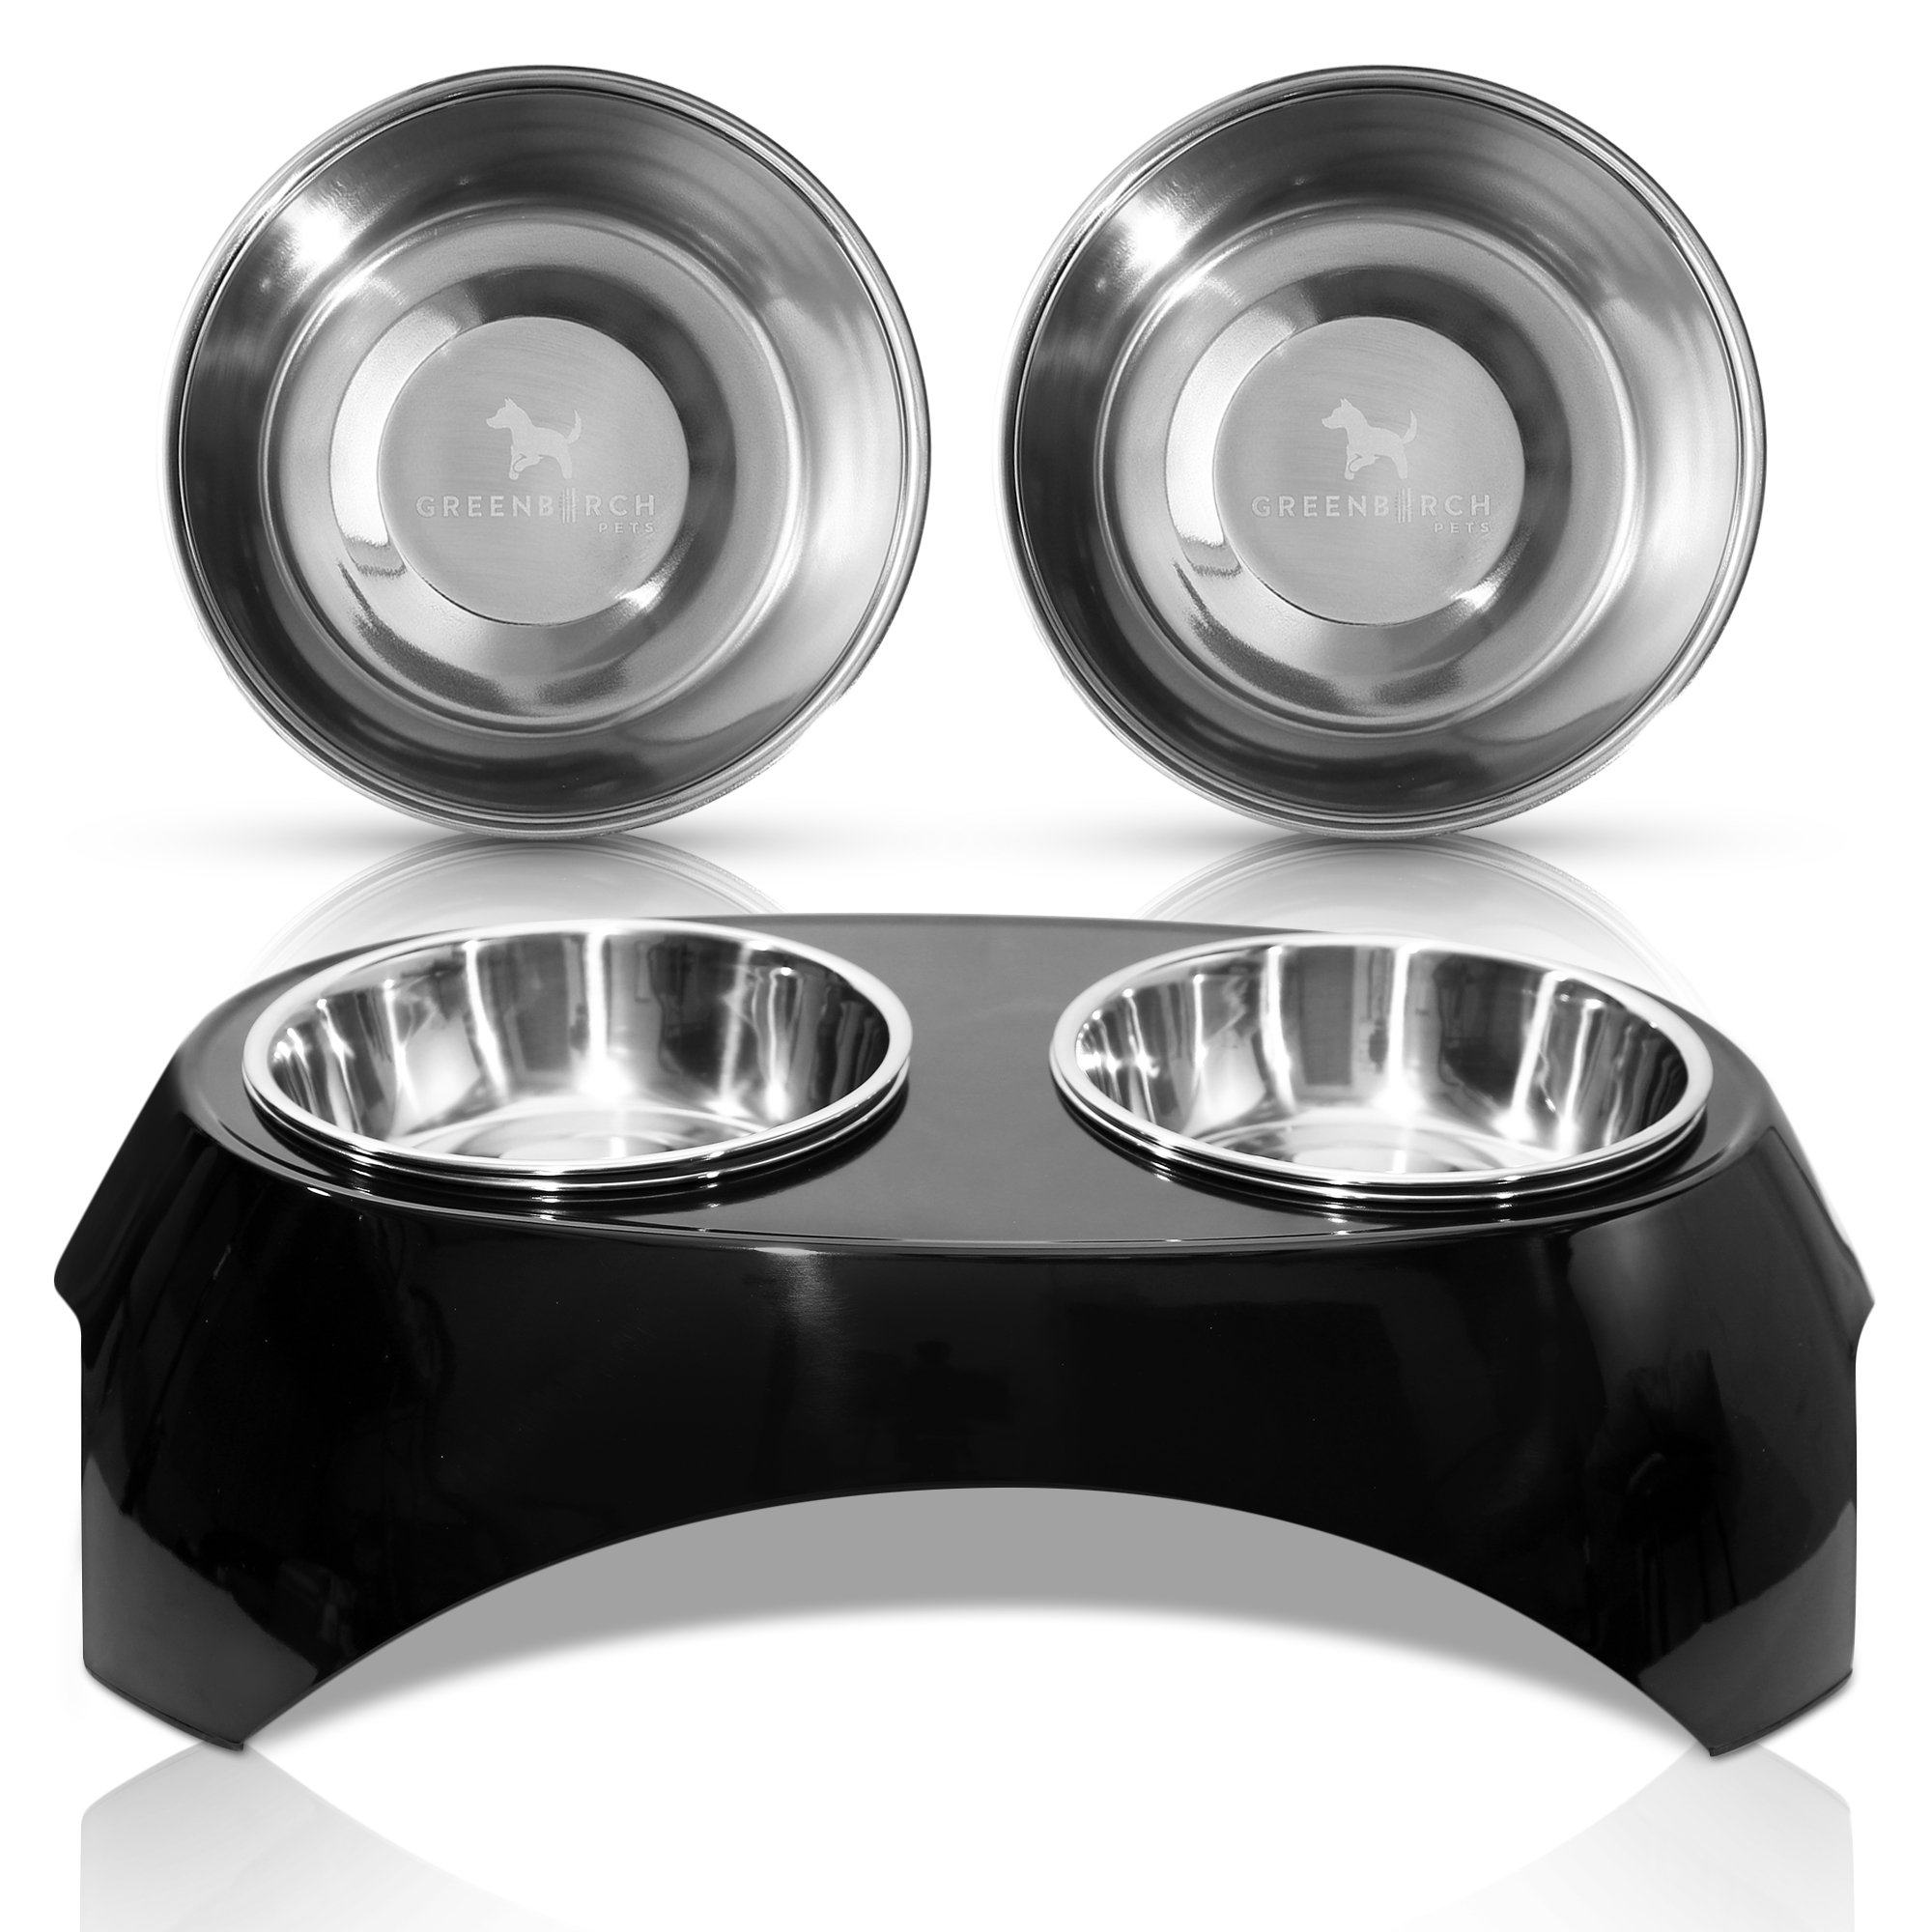 Green Birch Pets Elevated Dog Bowl -Raised Pet Feeder Stand- 2 Extra Stainless Steel Bowls Included- FDA Compliant- BPA Free